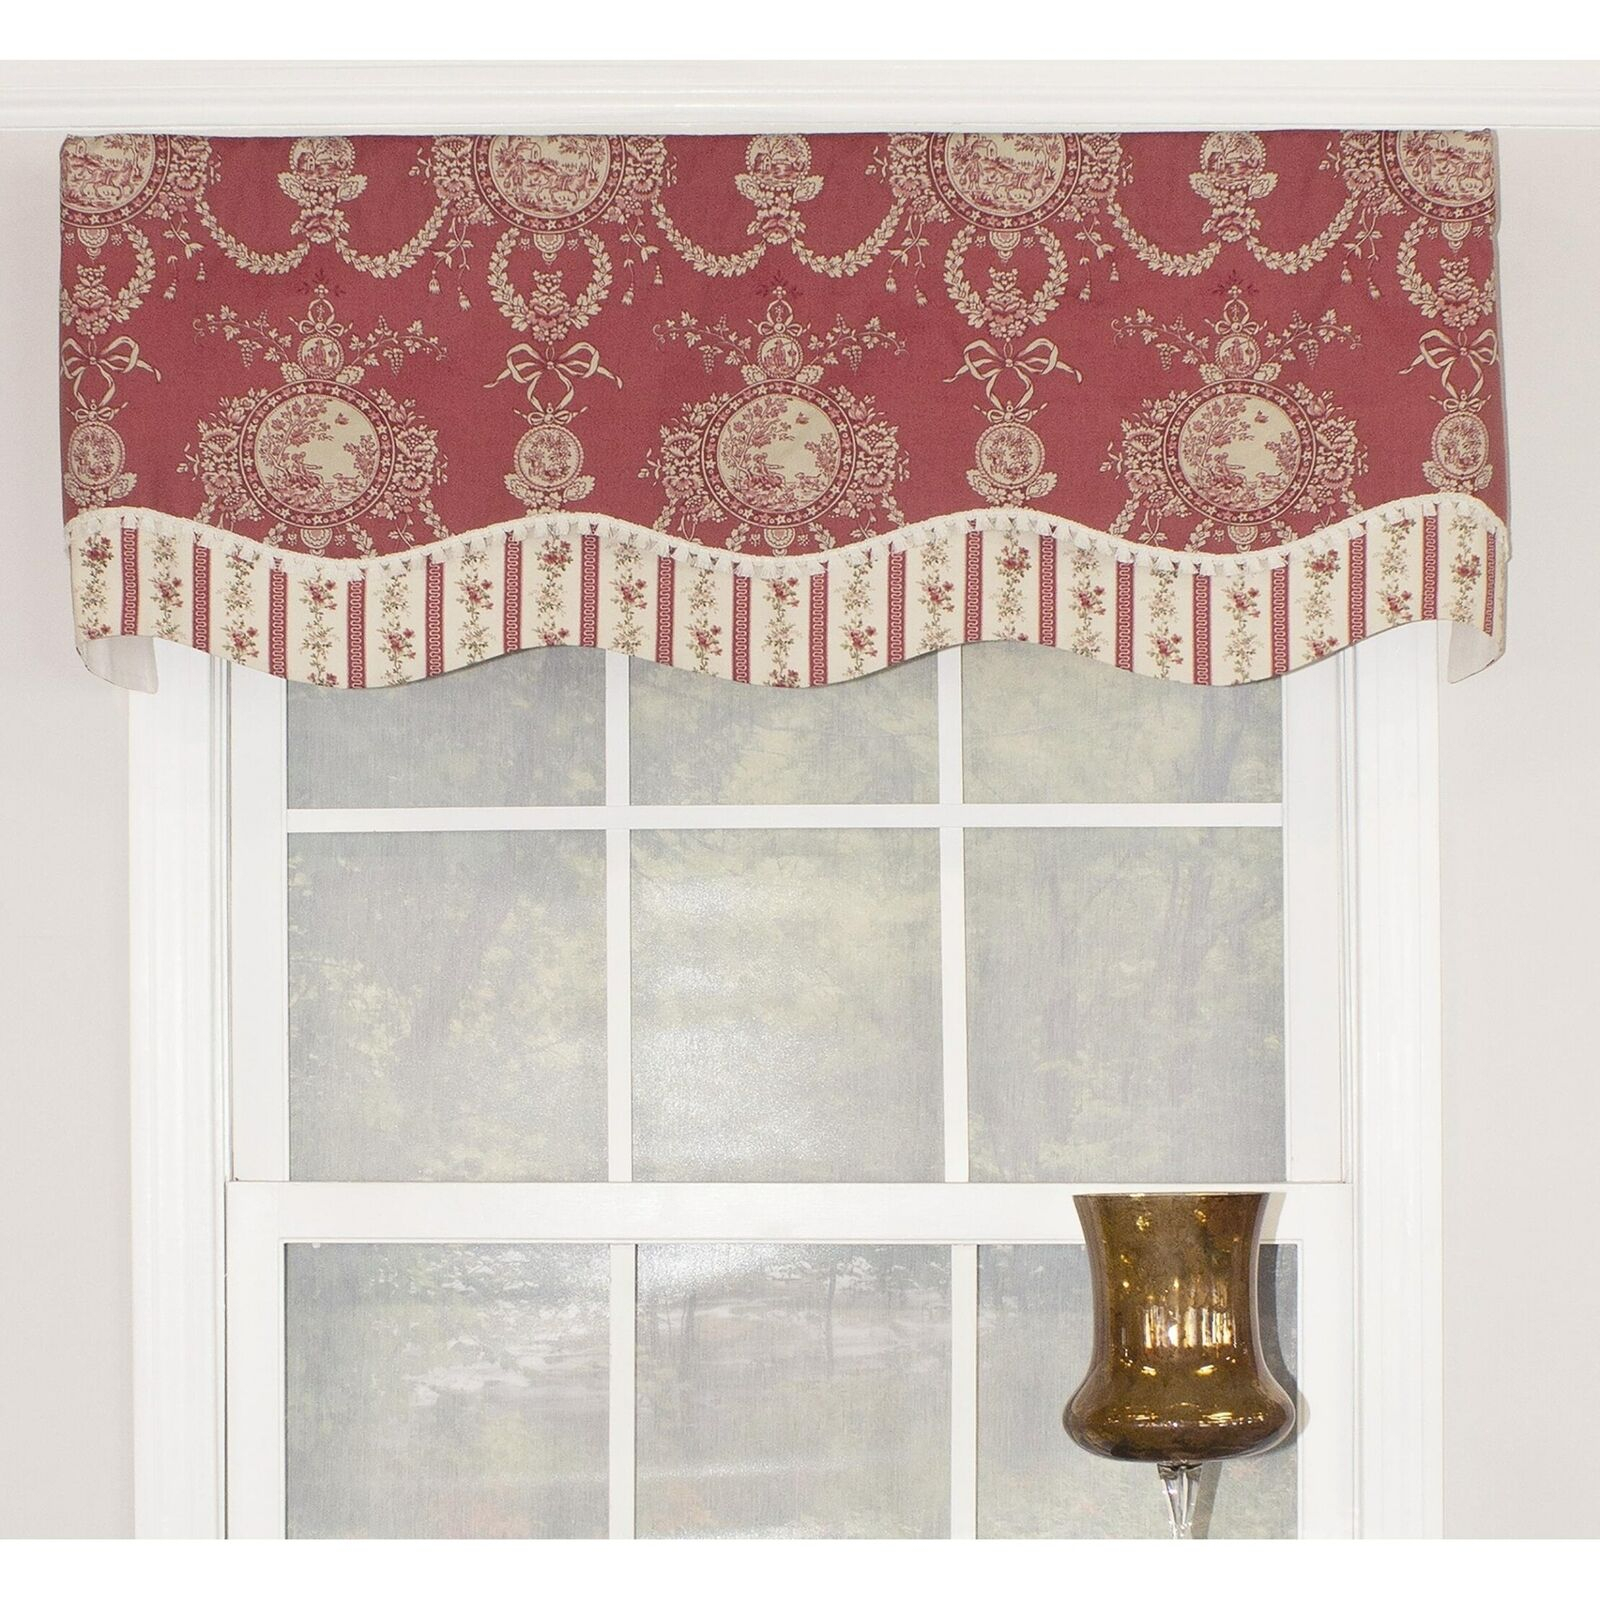 """Rlf Home Cameo Toile Glory 50"""" Window Valance – Red Red, Cream, Off White  Horizo Throughout Aviary Window Curtains (Gallery 10 of 20)"""